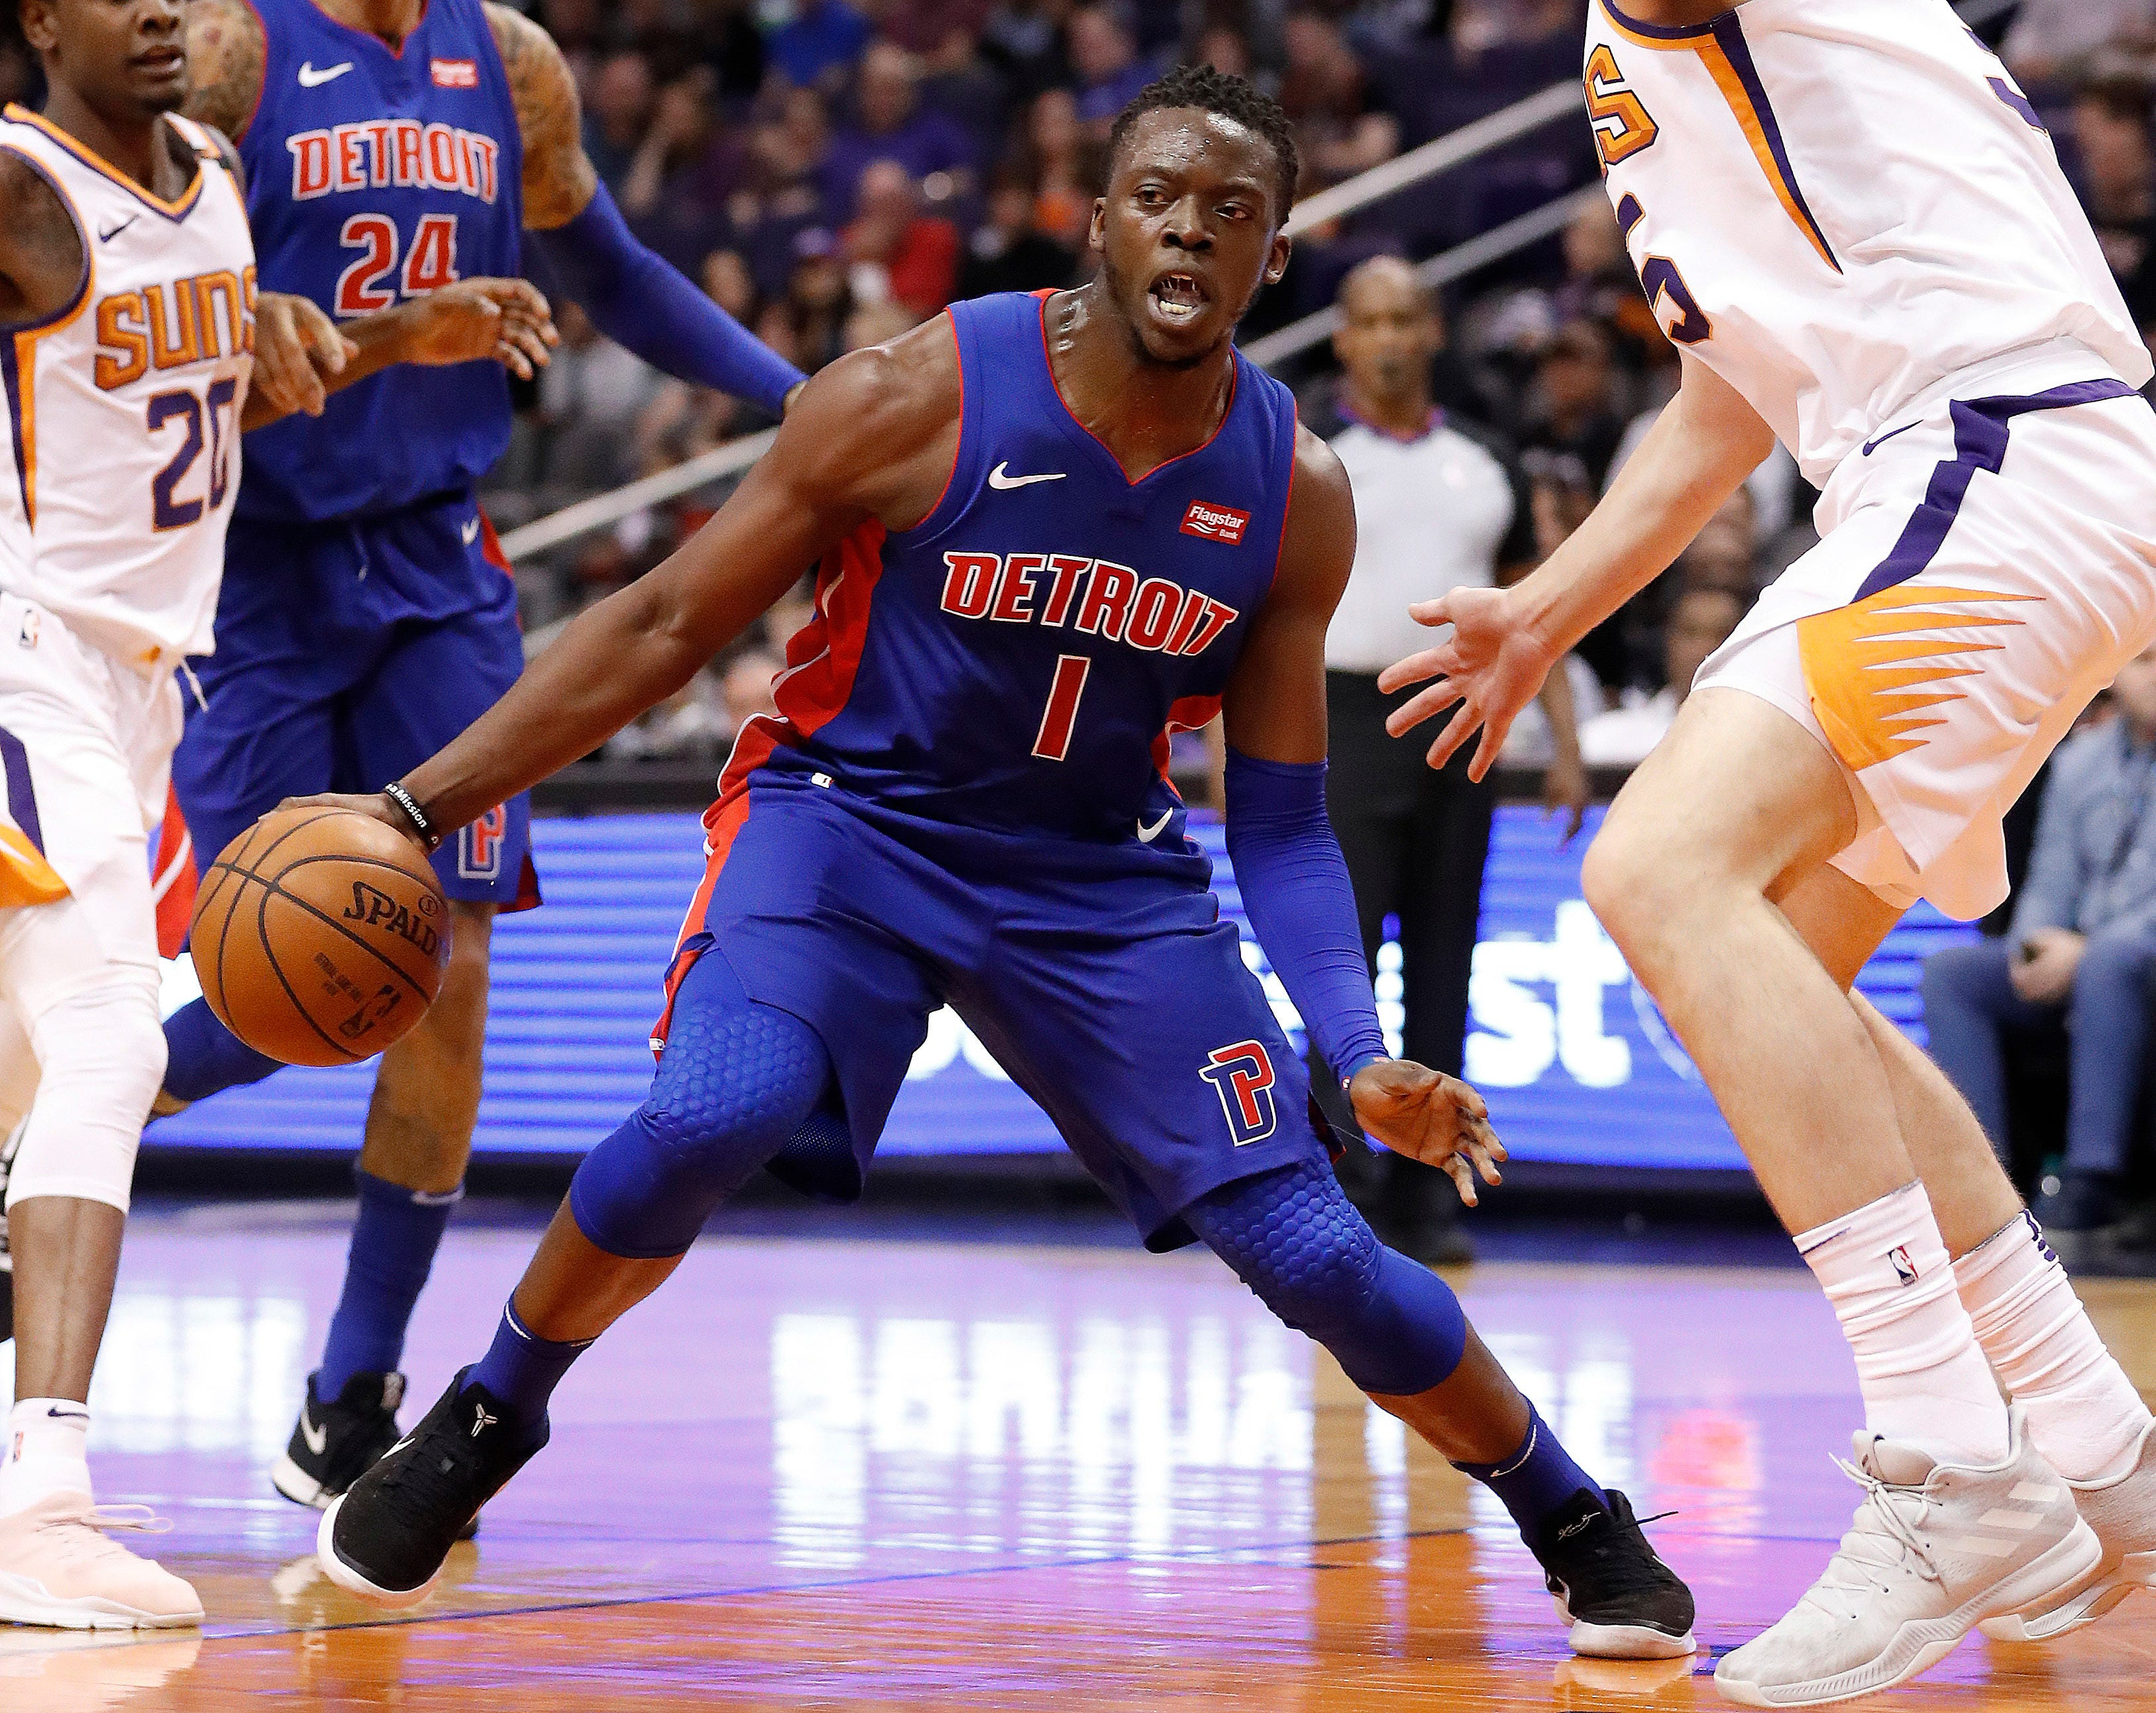 http   www.freep.com picture-gallery sports nba pistons 2018 07 15 ... a45019bec